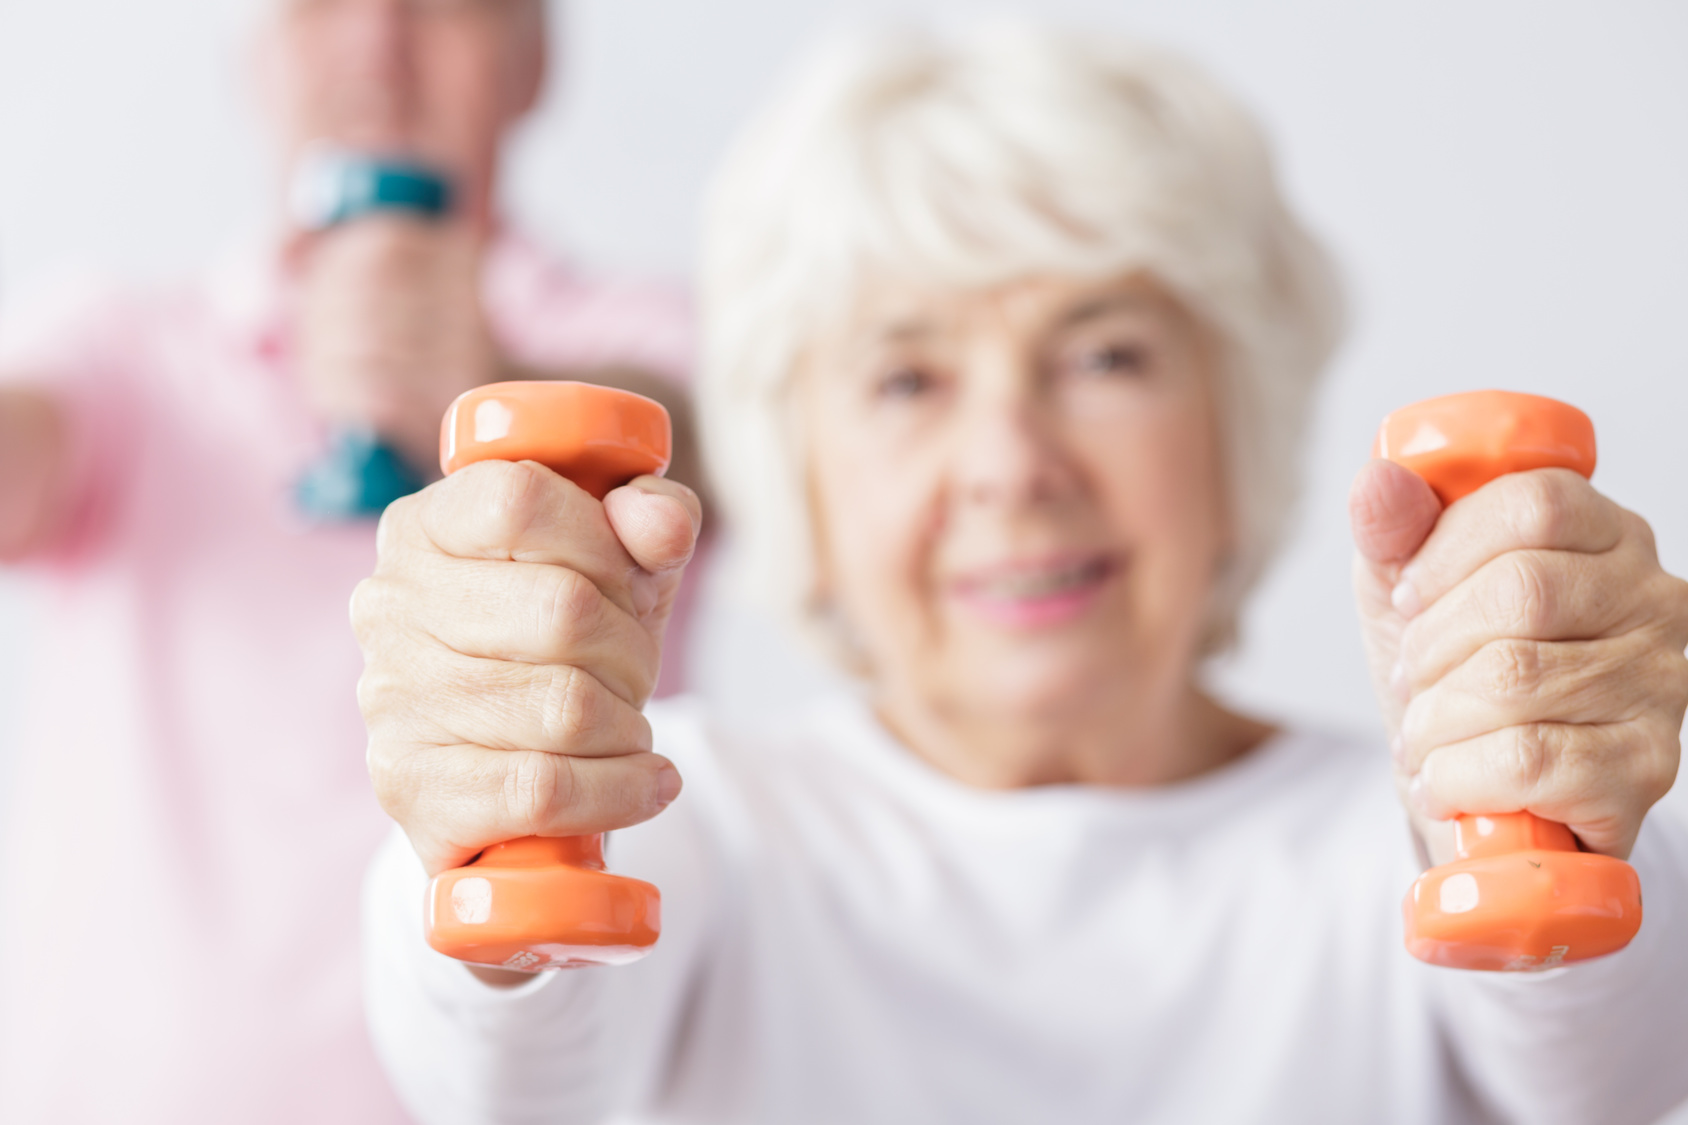 GERIATRIC ADVANCED AGE PHYSICAL THERAPY IN ASSISTED LIVING FACILITIES AND ADULT MEDICAL DAYCARE.jpg